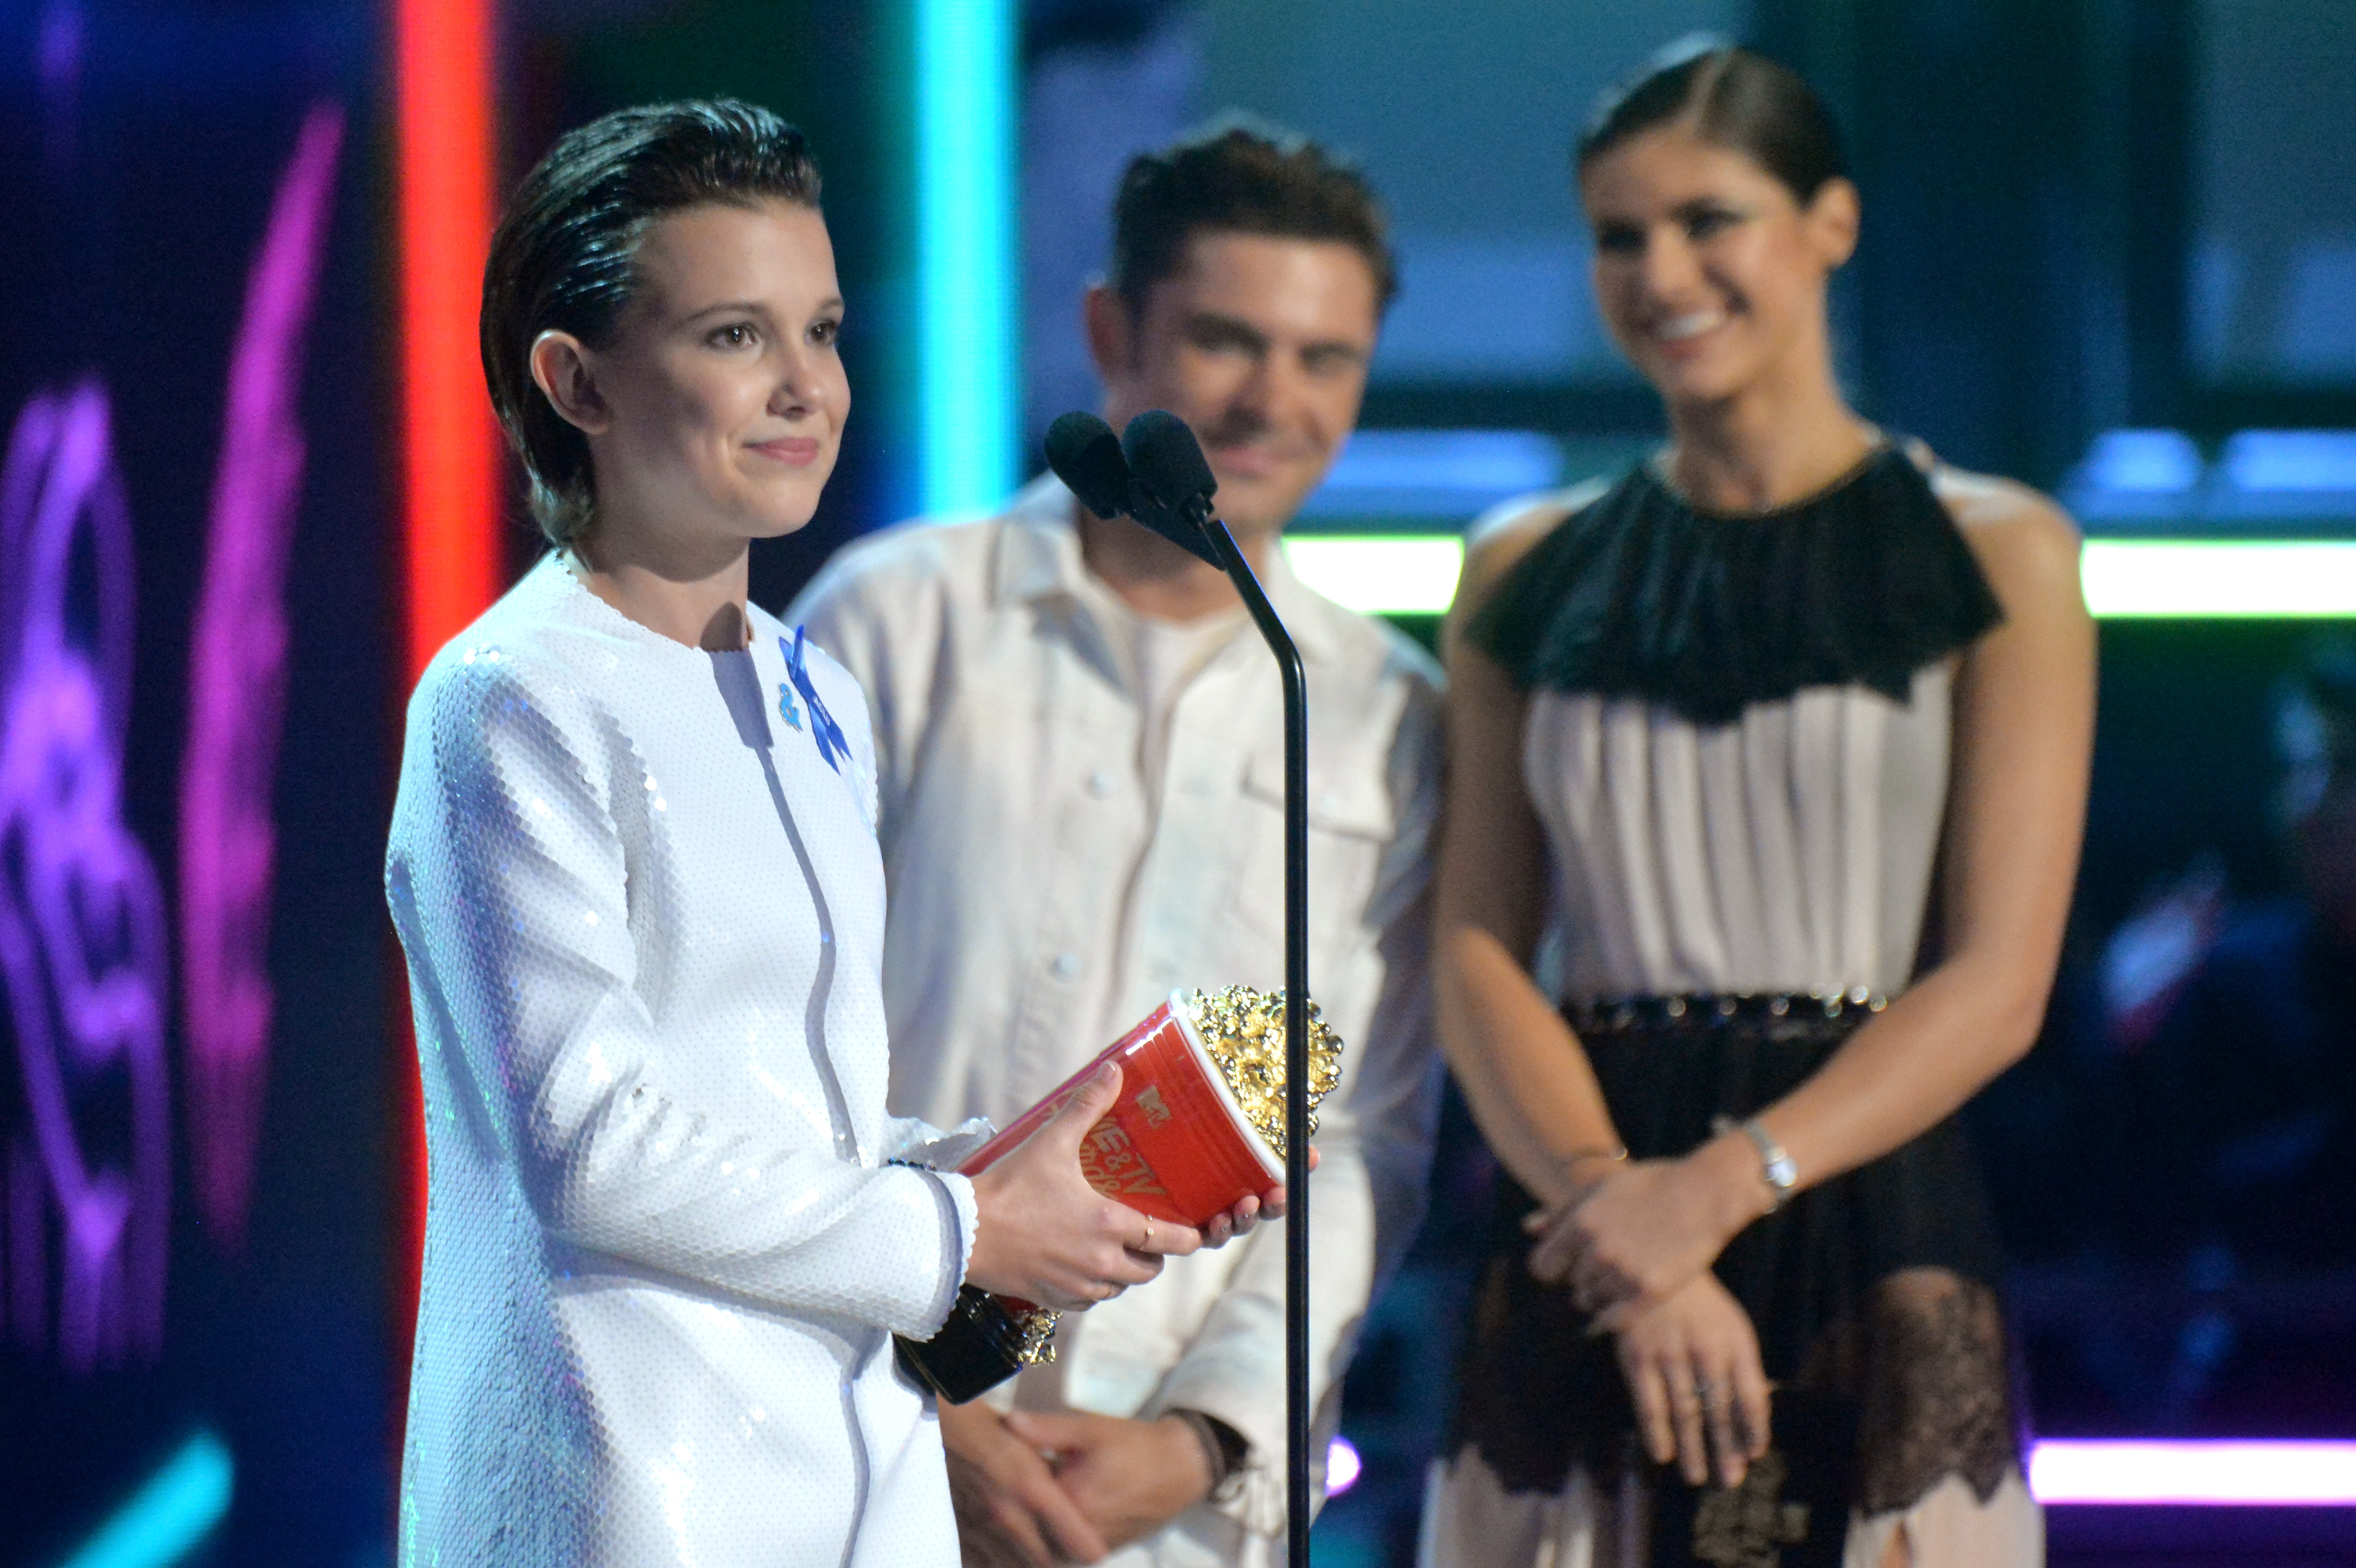 Millie Bobby Brown accepts the award for Best Actor in a Show during the 2017 MTV Movie And TV Awards on May 7, 2017 in Los Angeles, California.